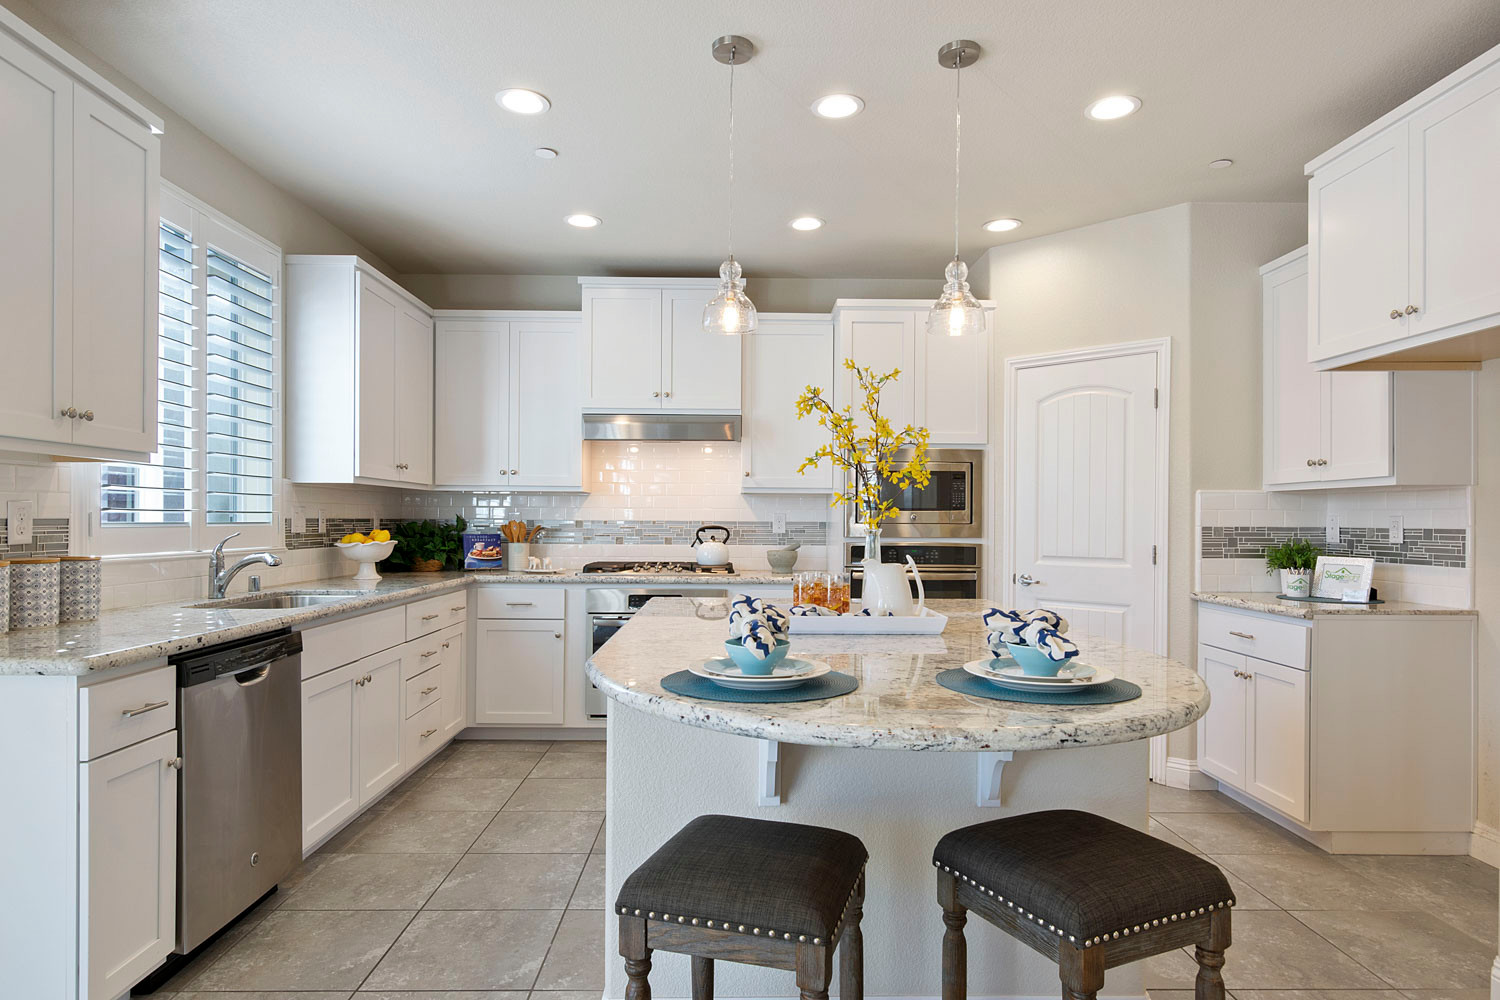 75 Beautiful White Kitchen Cabinets Pictures & Ideas | Houzz